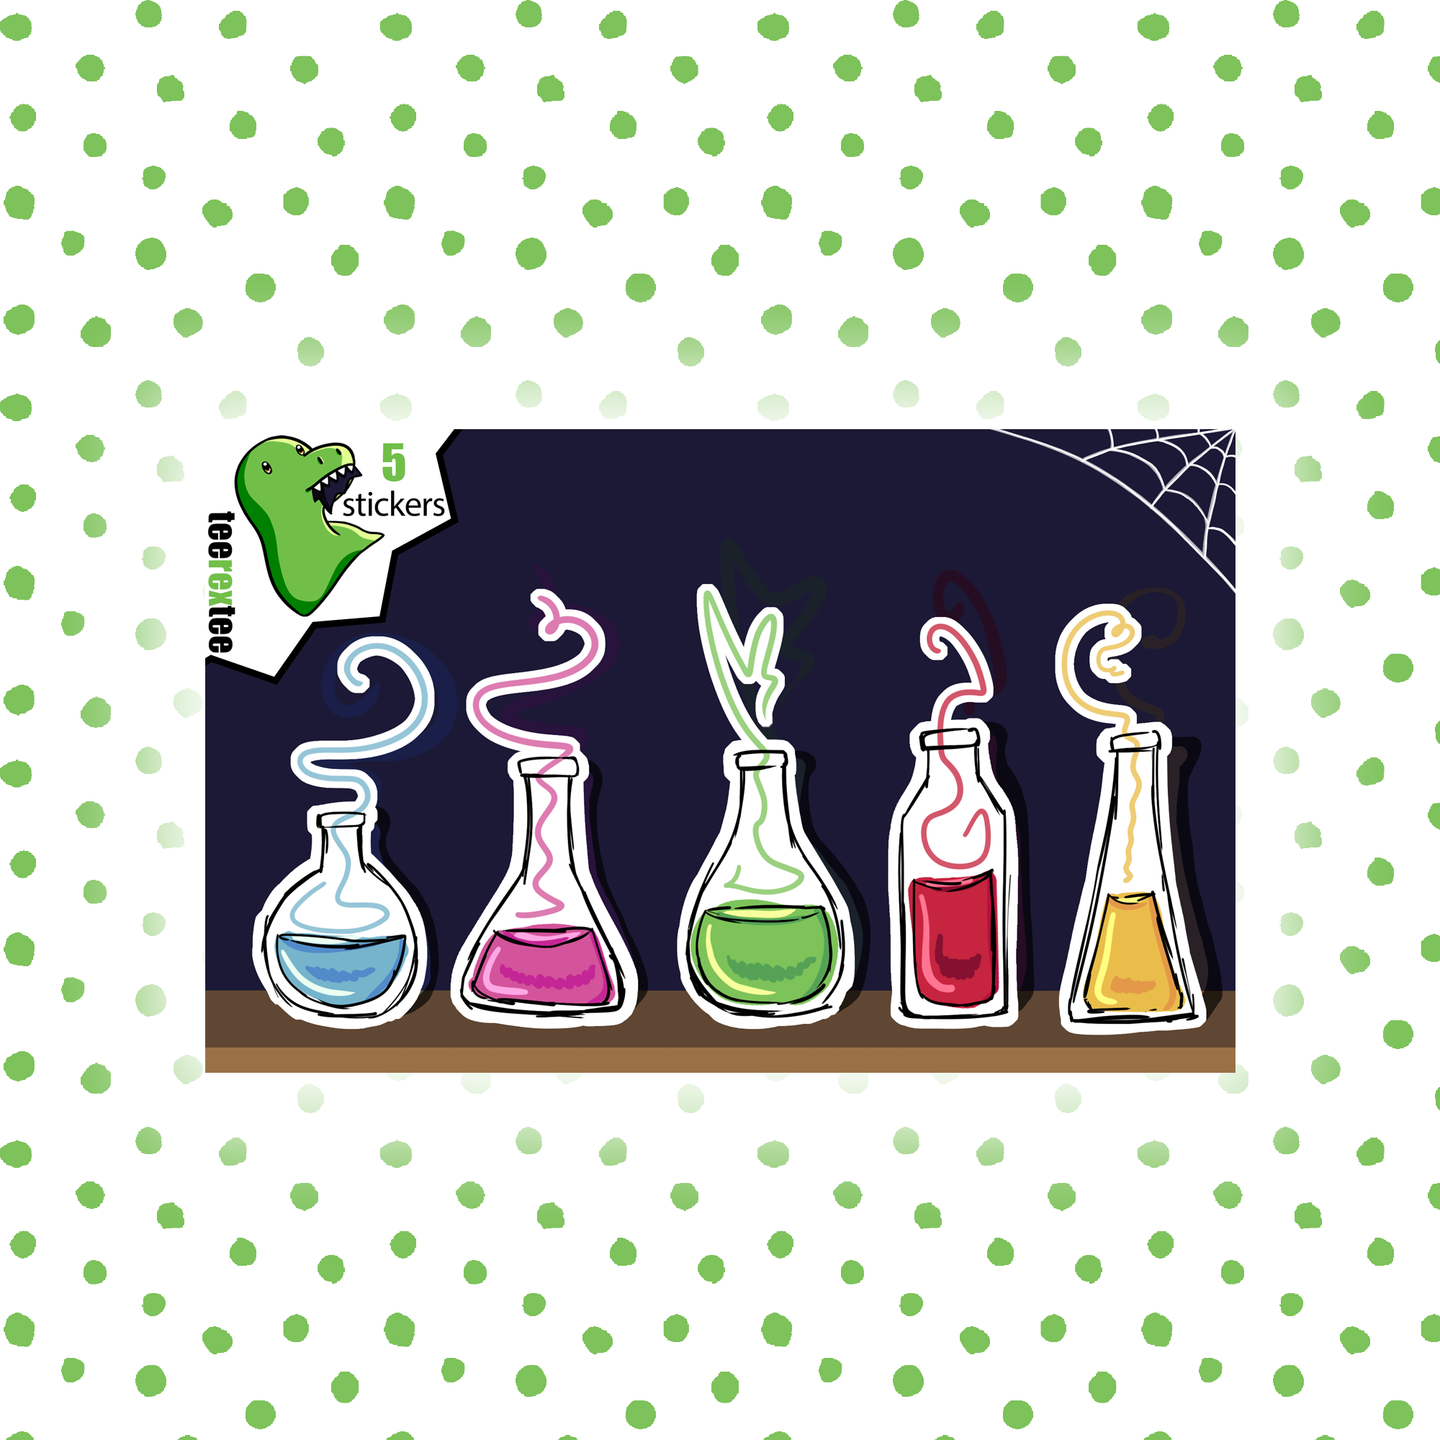 Potions - Fantasy Sticker Half Sheet